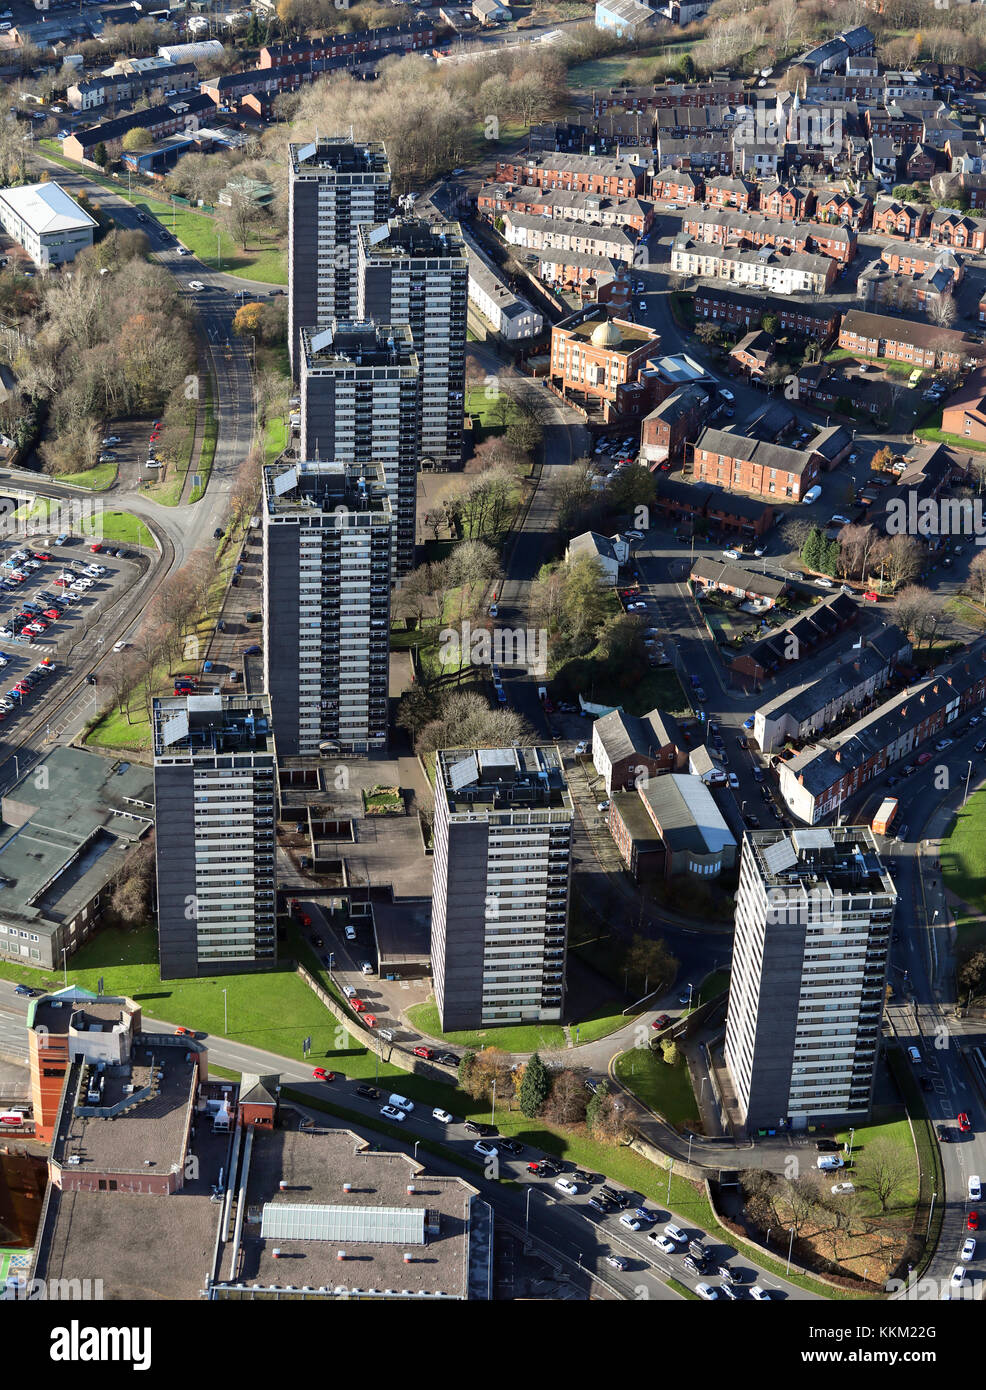 aerial view of Rochdale 7 tower blocks, UK - Stock Image